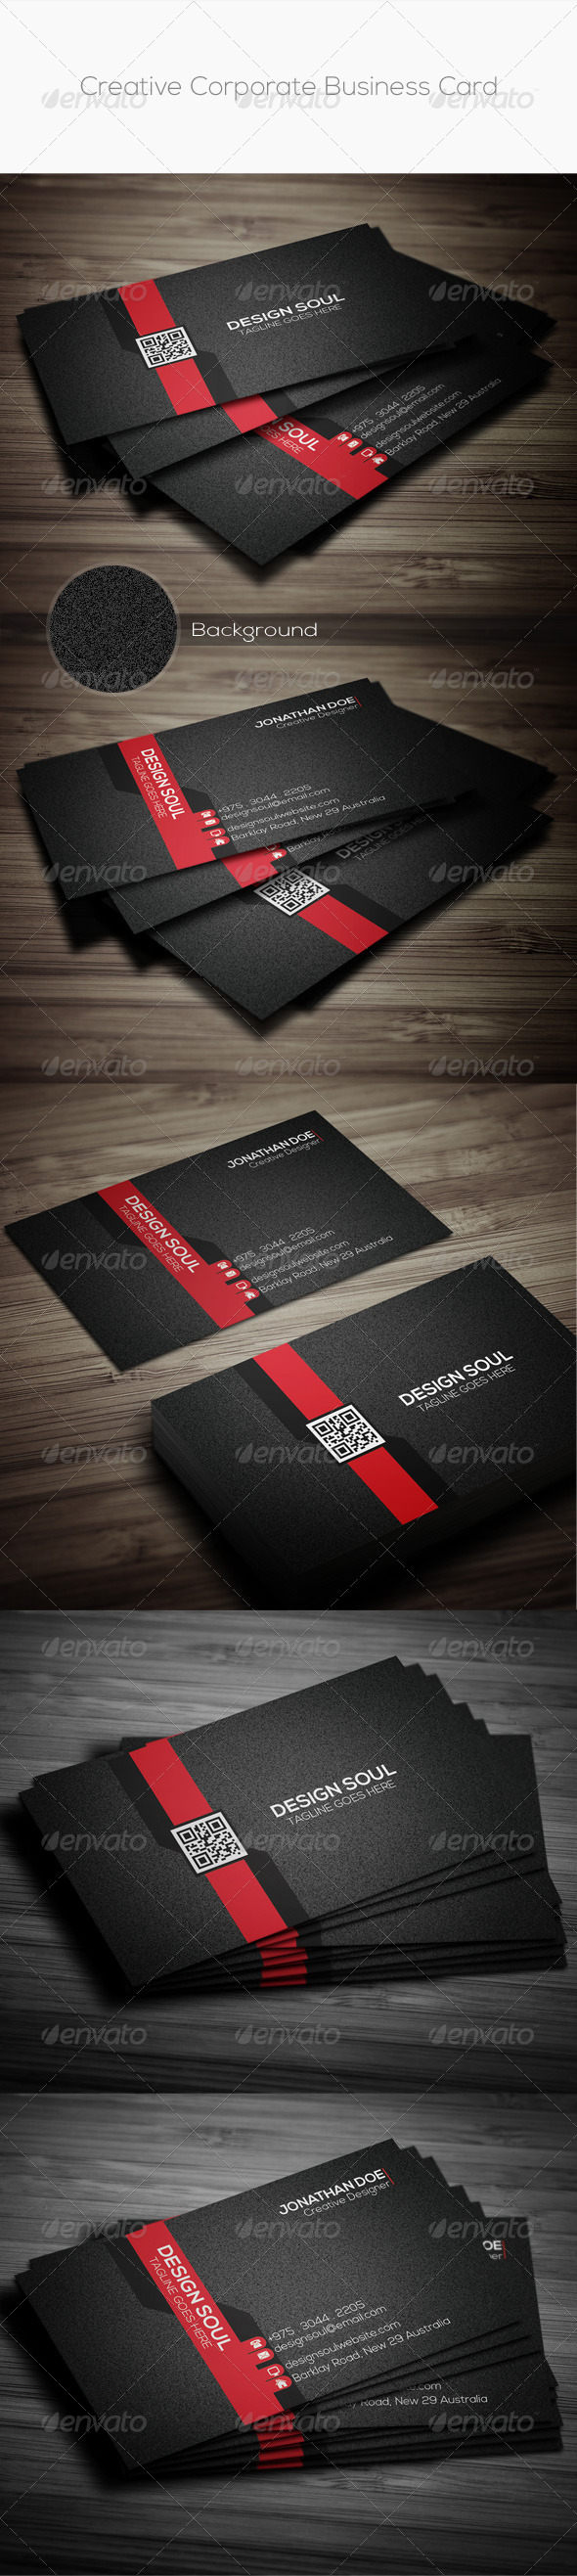 GraphicRiver Creative Corporate Business Card 8622666